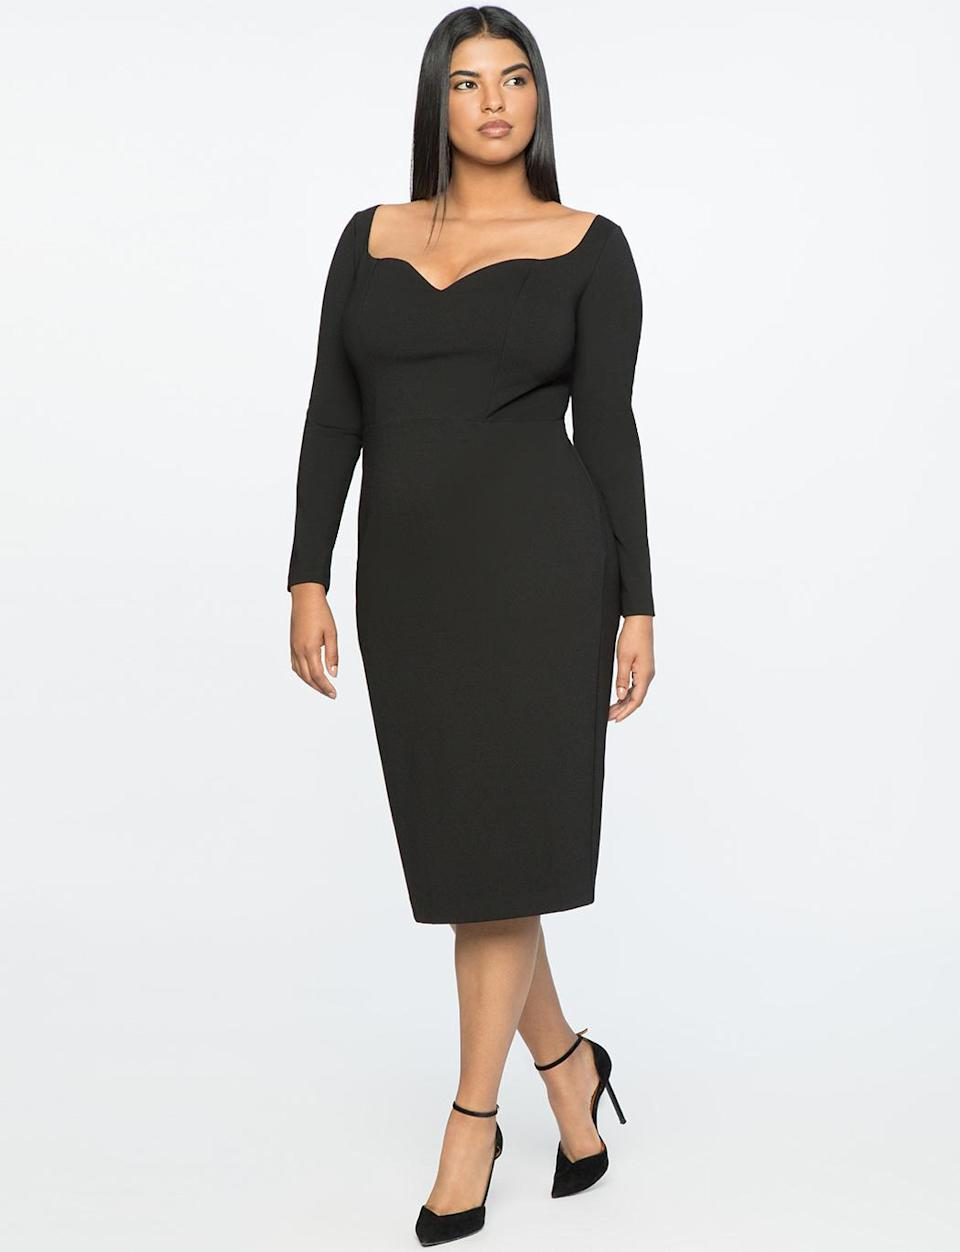 """<p>This sweetheart neckline adds a feminine detail to an ordinary LBD. Chances are you'll wear this dress over and over, well past the holidays. <br>Drape-front V-neck dress, $100, <a rel=""""nofollow noopener"""" href=""""https://fave.co/2zkGB4F"""" target=""""_blank"""" data-ylk=""""slk:eloquii.com"""" class=""""link rapid-noclick-resp"""">eloquii.com</a> </p>"""